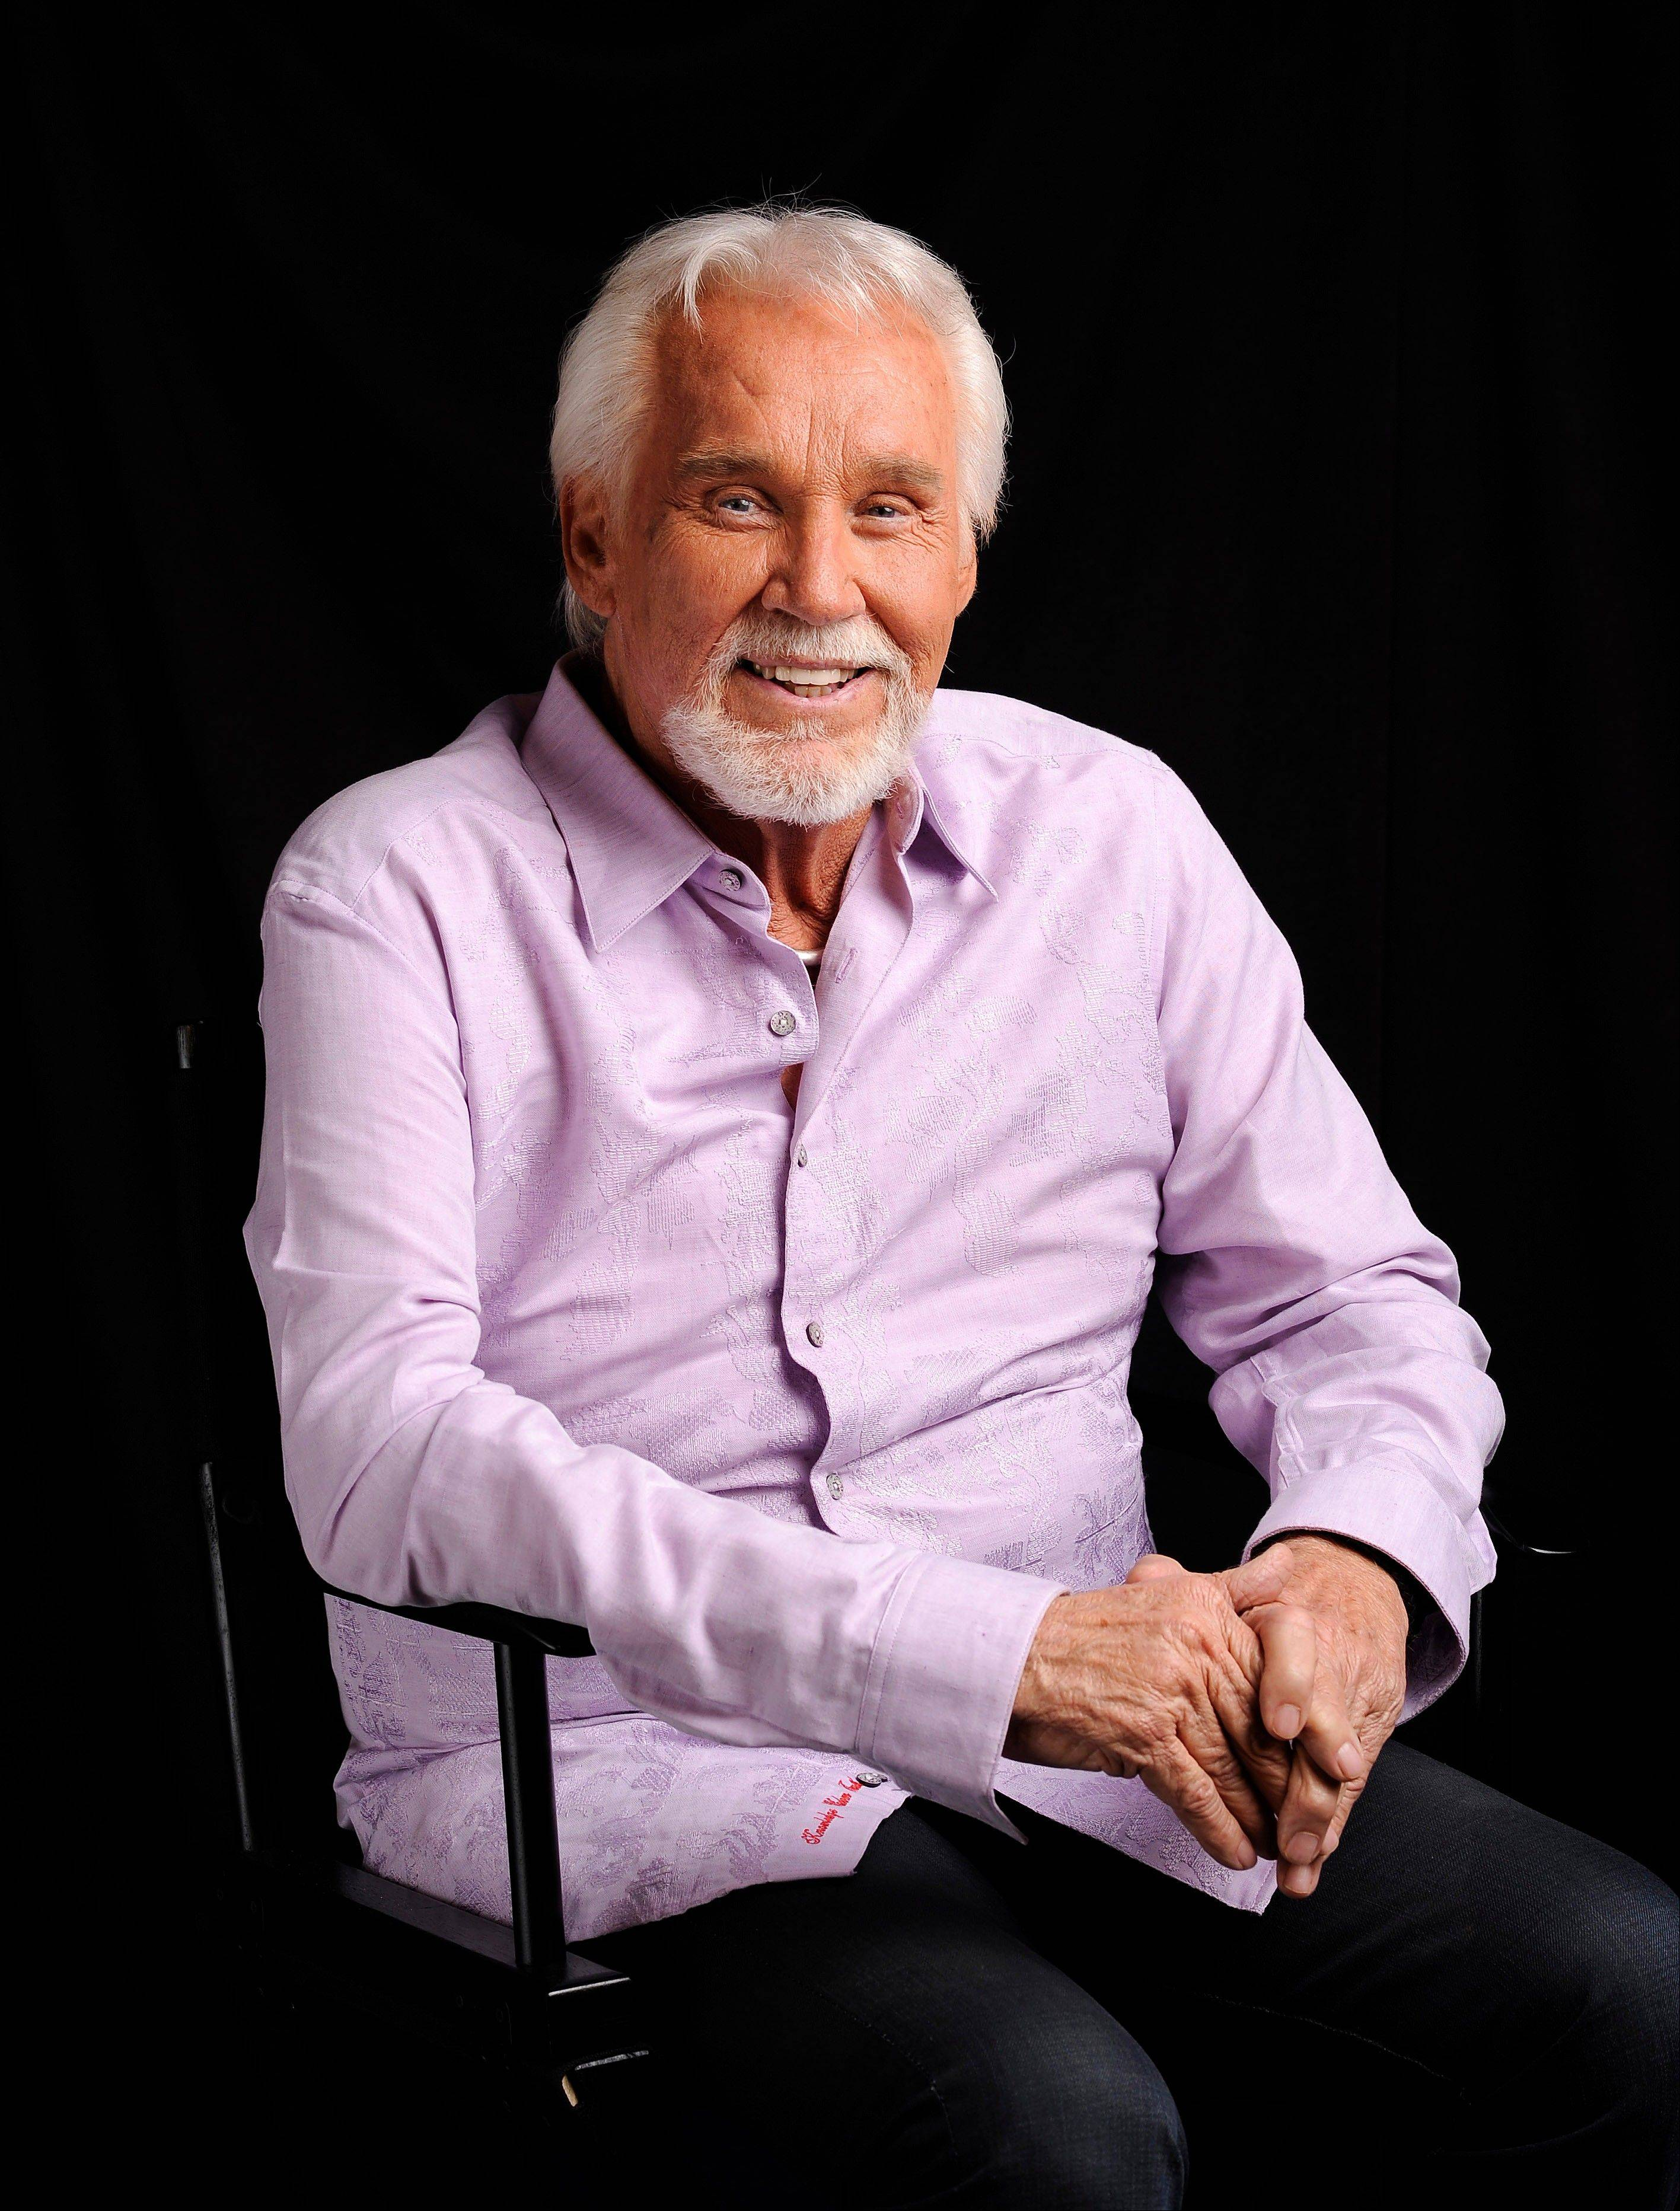 Kenny Rogers long ago cemented his legacy in the world of popular music, and we'll get another reminder of this on Sunday when he's finally inducted into the Country Music Hall of Fame.